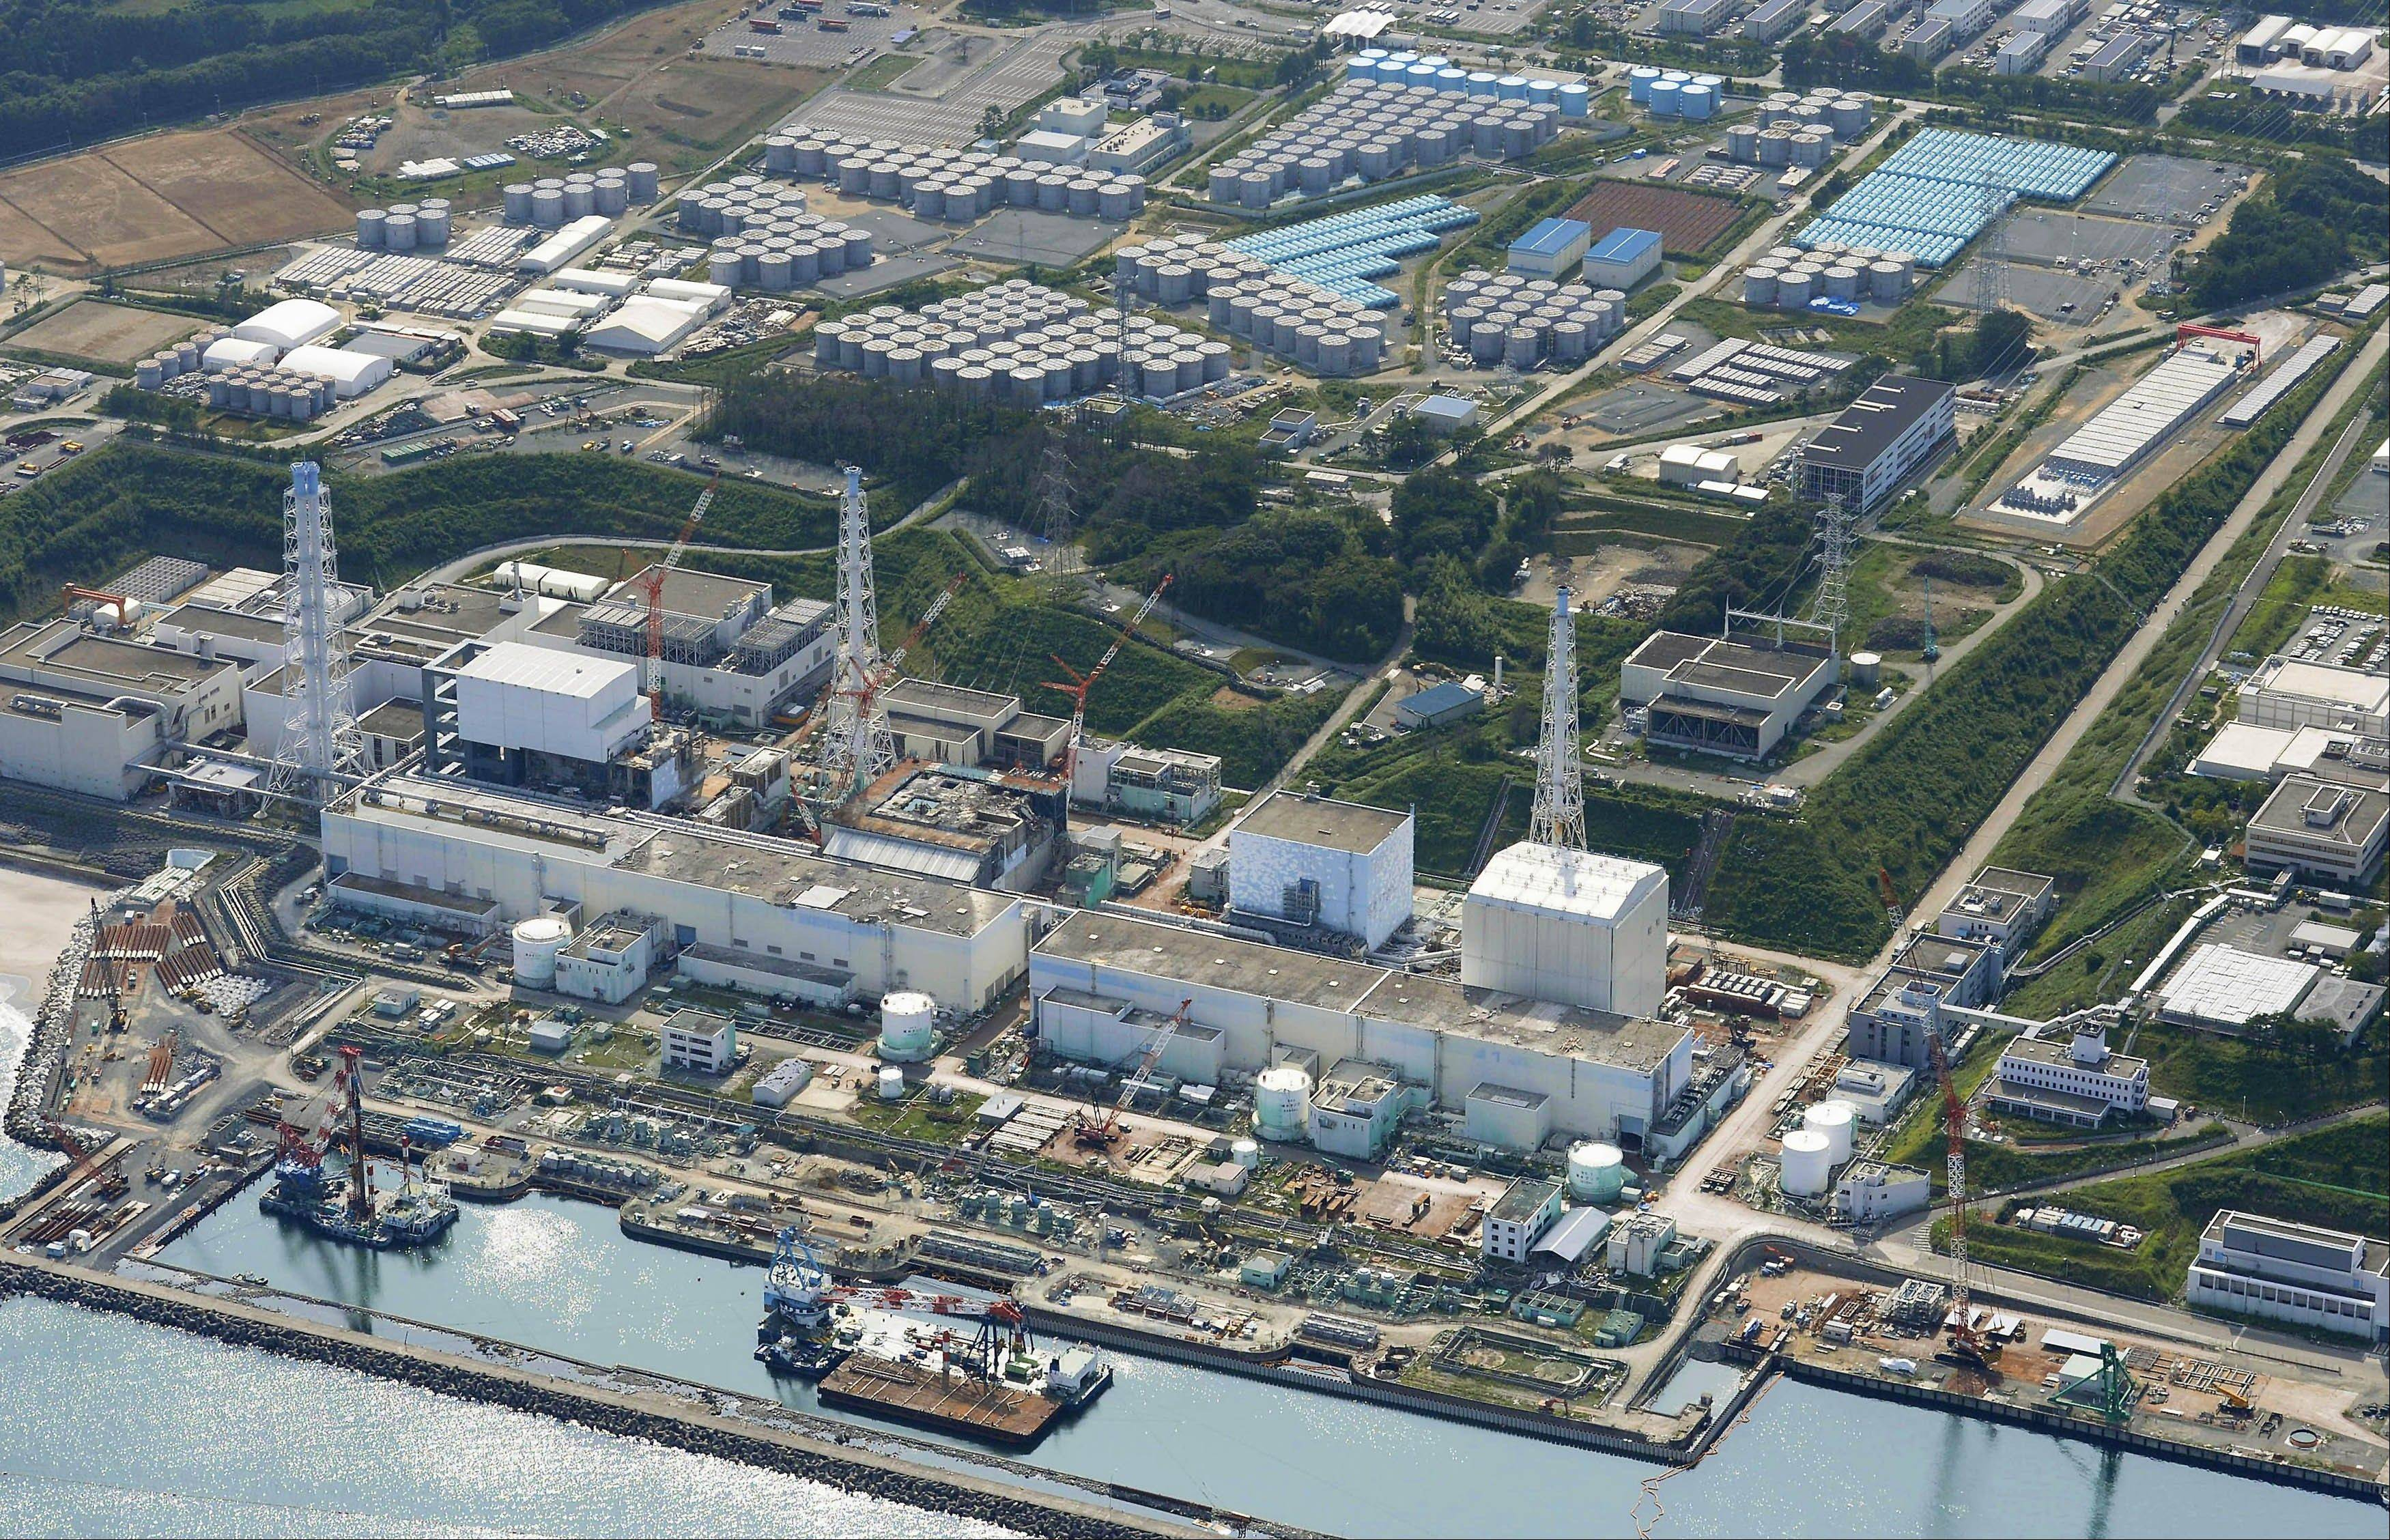 Japan will fund some of the costly, long-term projects to control the worrisome and growing leaks of contaminated water at the crippled Fukushima nuclear plant. Public funding is part of several measures the government adopted Tuesday.